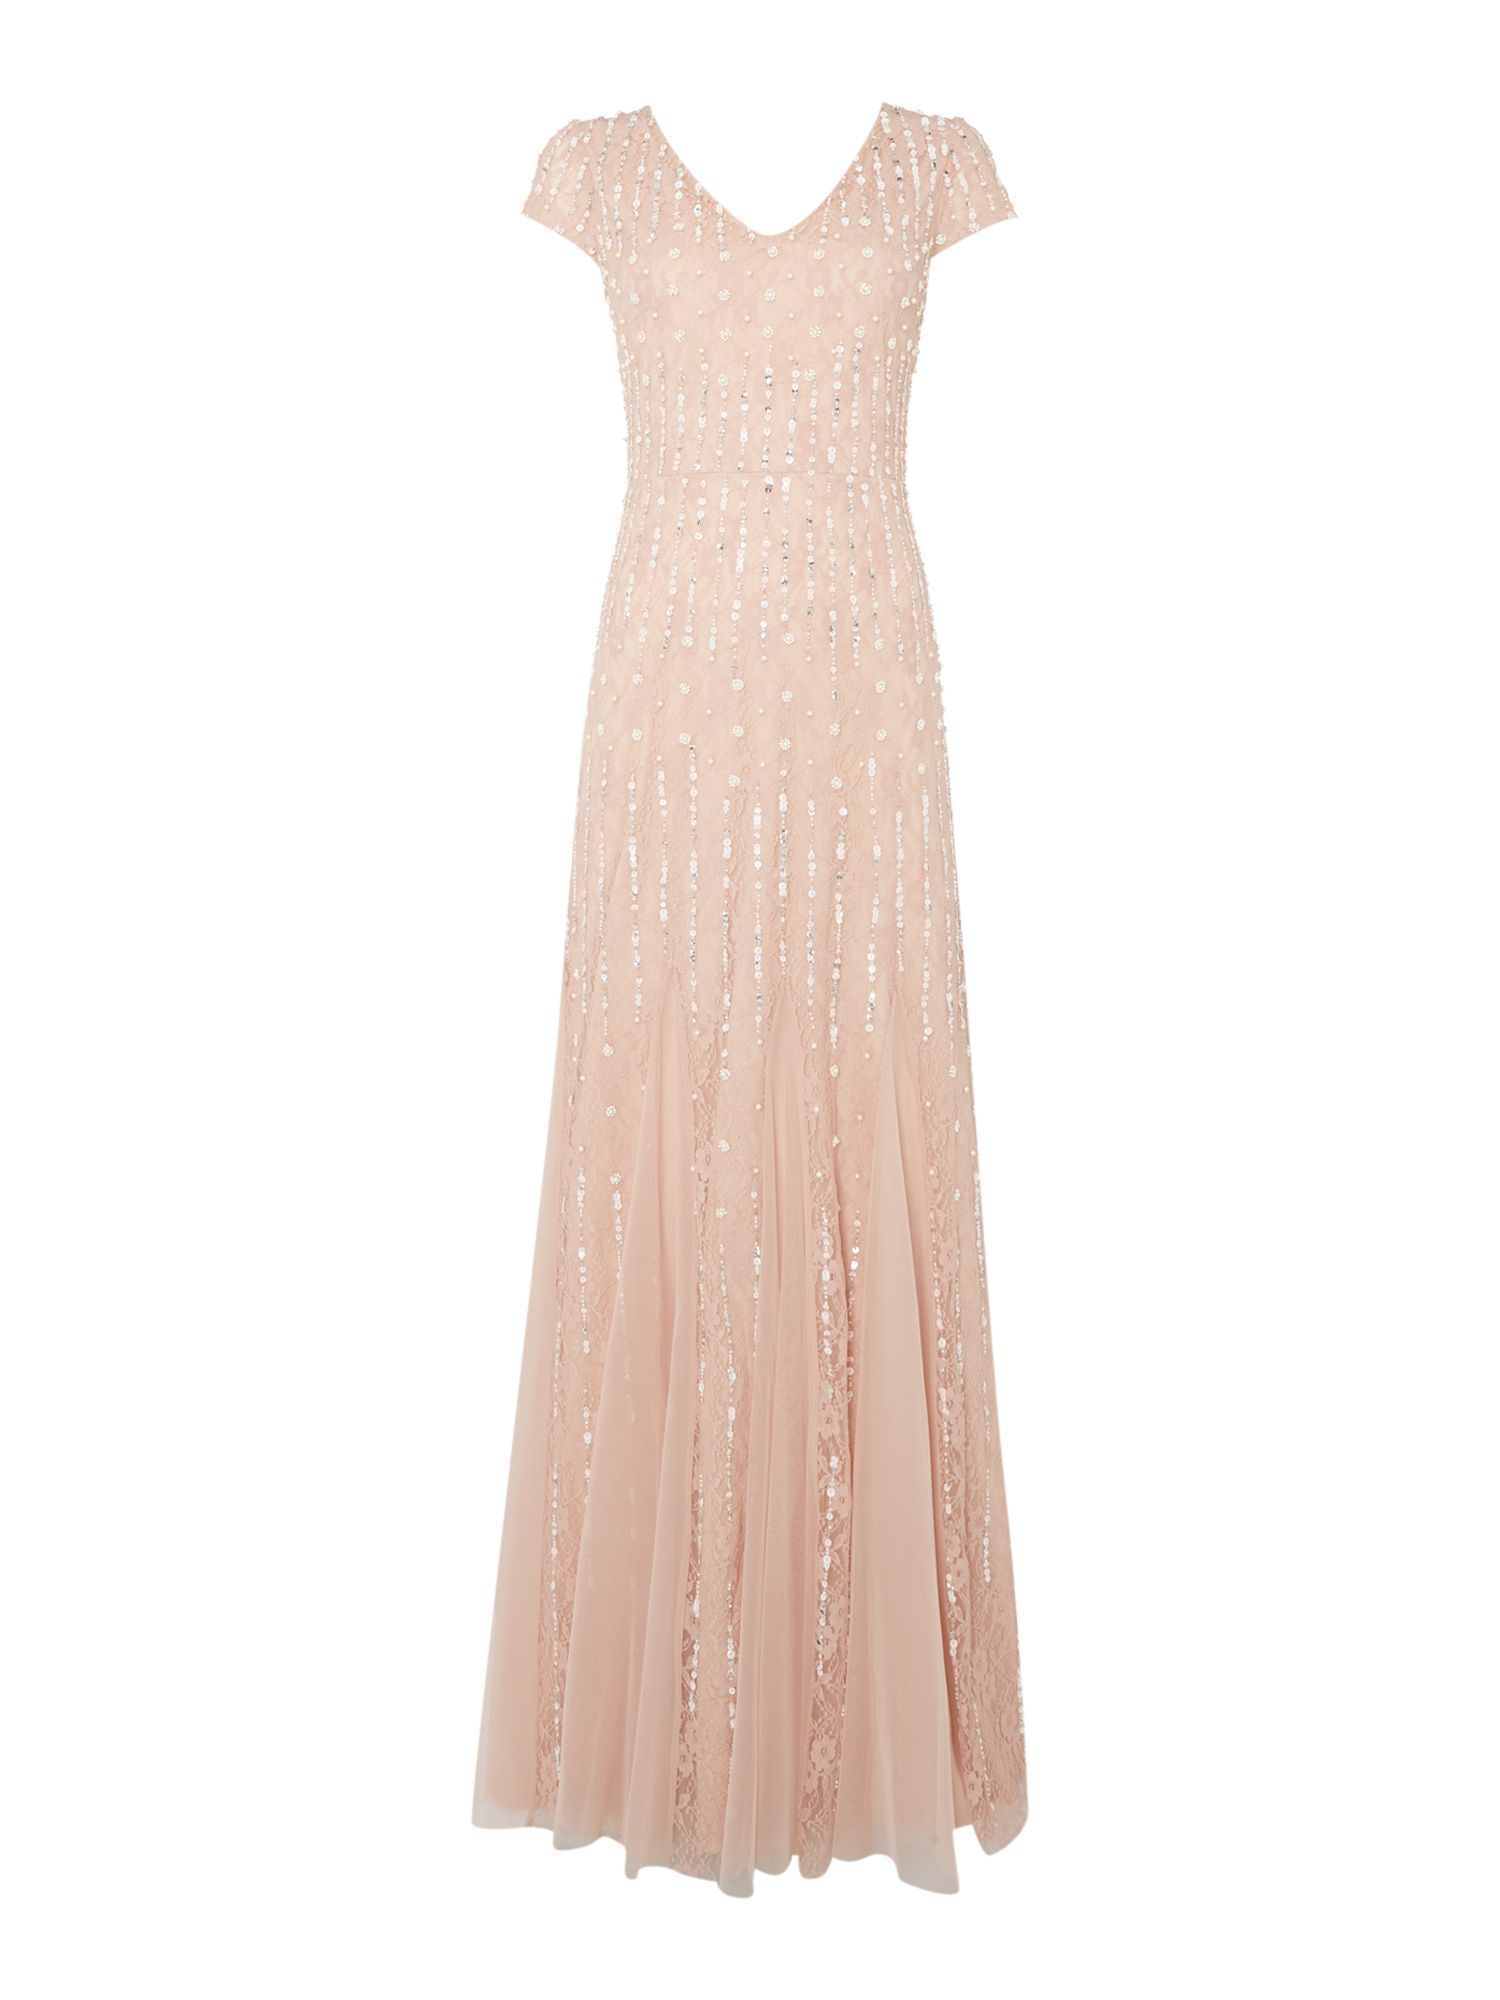 Vintage Inspired Bridesmaid Dresses, Mothers Dresses Adrianna Papell Short sleeve V neck beaded gown £340.00 AT vintagedancer.com